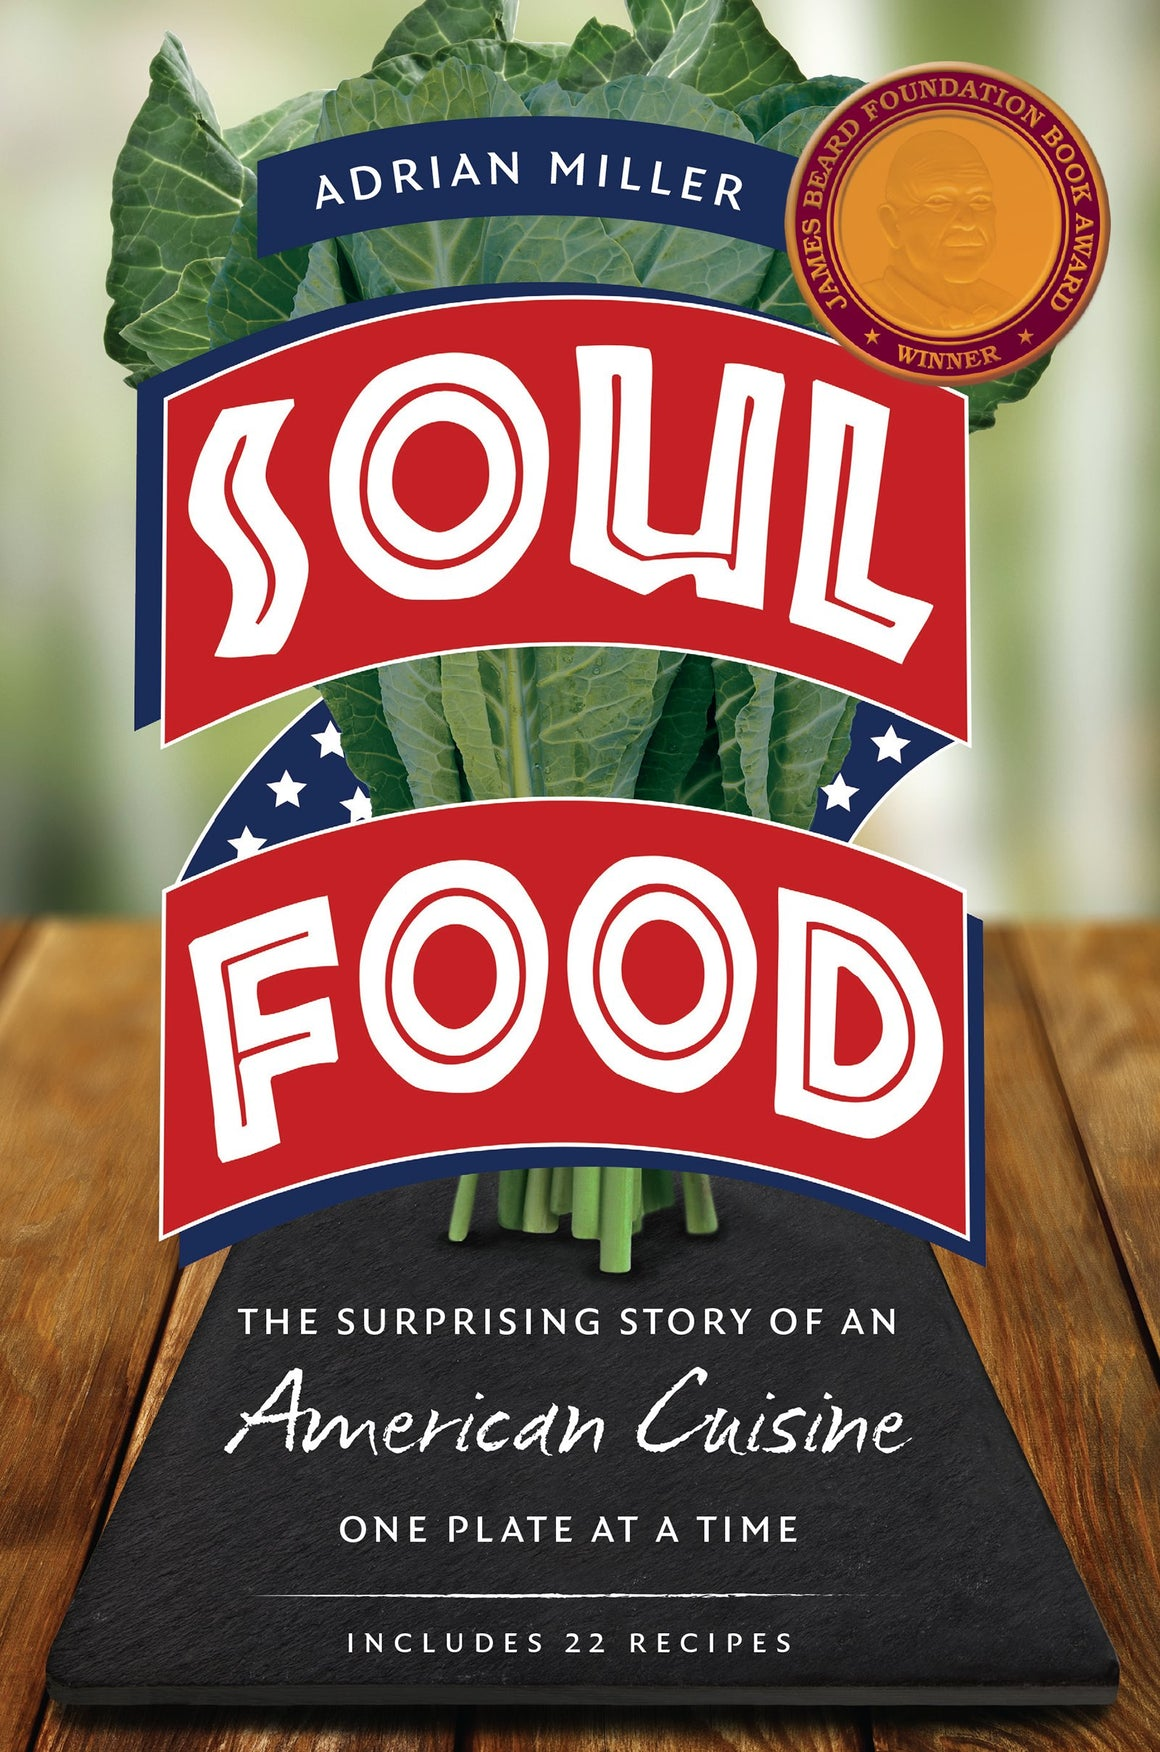 Adrian Miller. Soul Food: The Surprising Story of an American Cuisine, One Plate at a Time.